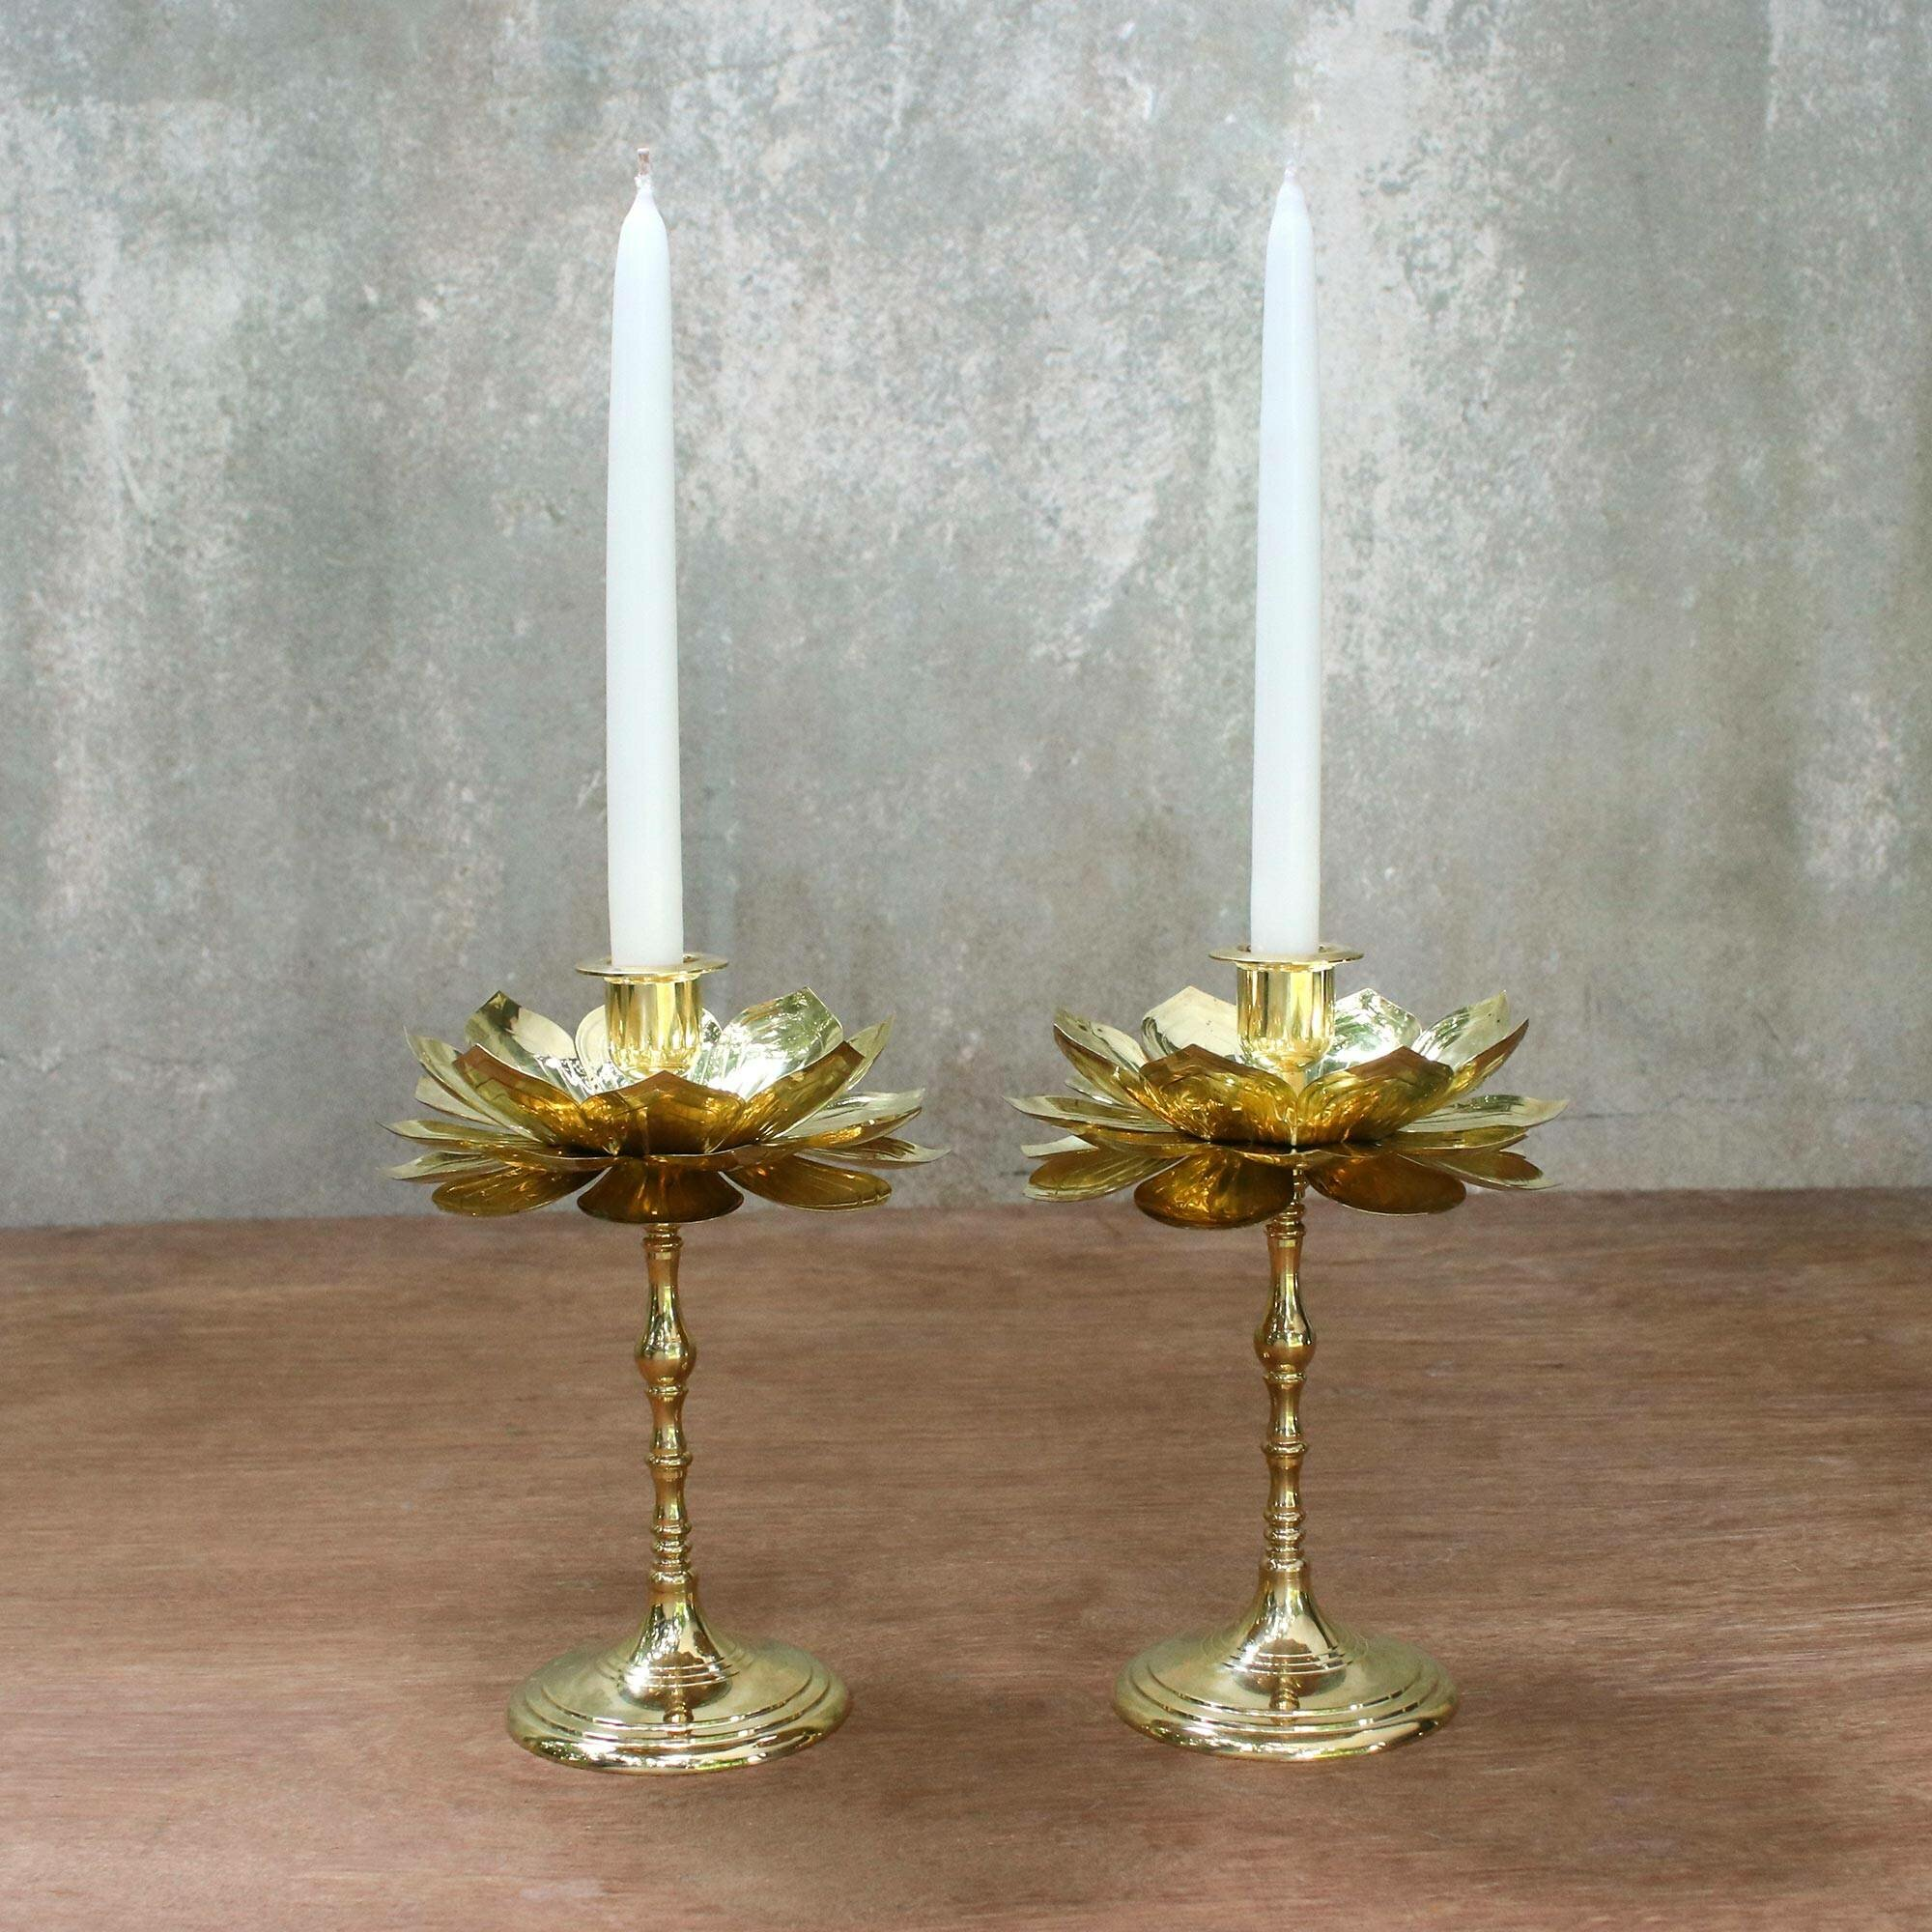 Brass Wall Candlestick Candle Holder Taper Candle Solid Brass Cabin Home Decor Country Home Vintage